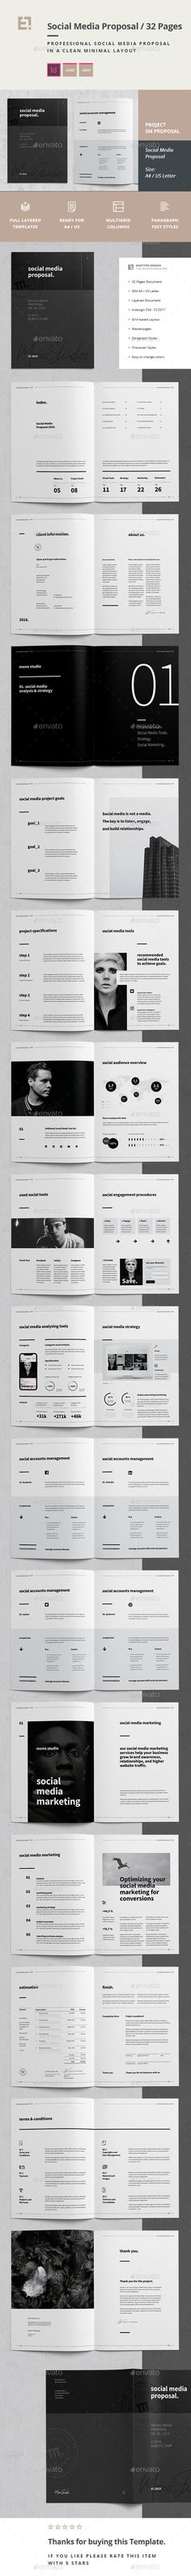 1344 Best Invoice & Proposal Template images in 2019 | Invoice